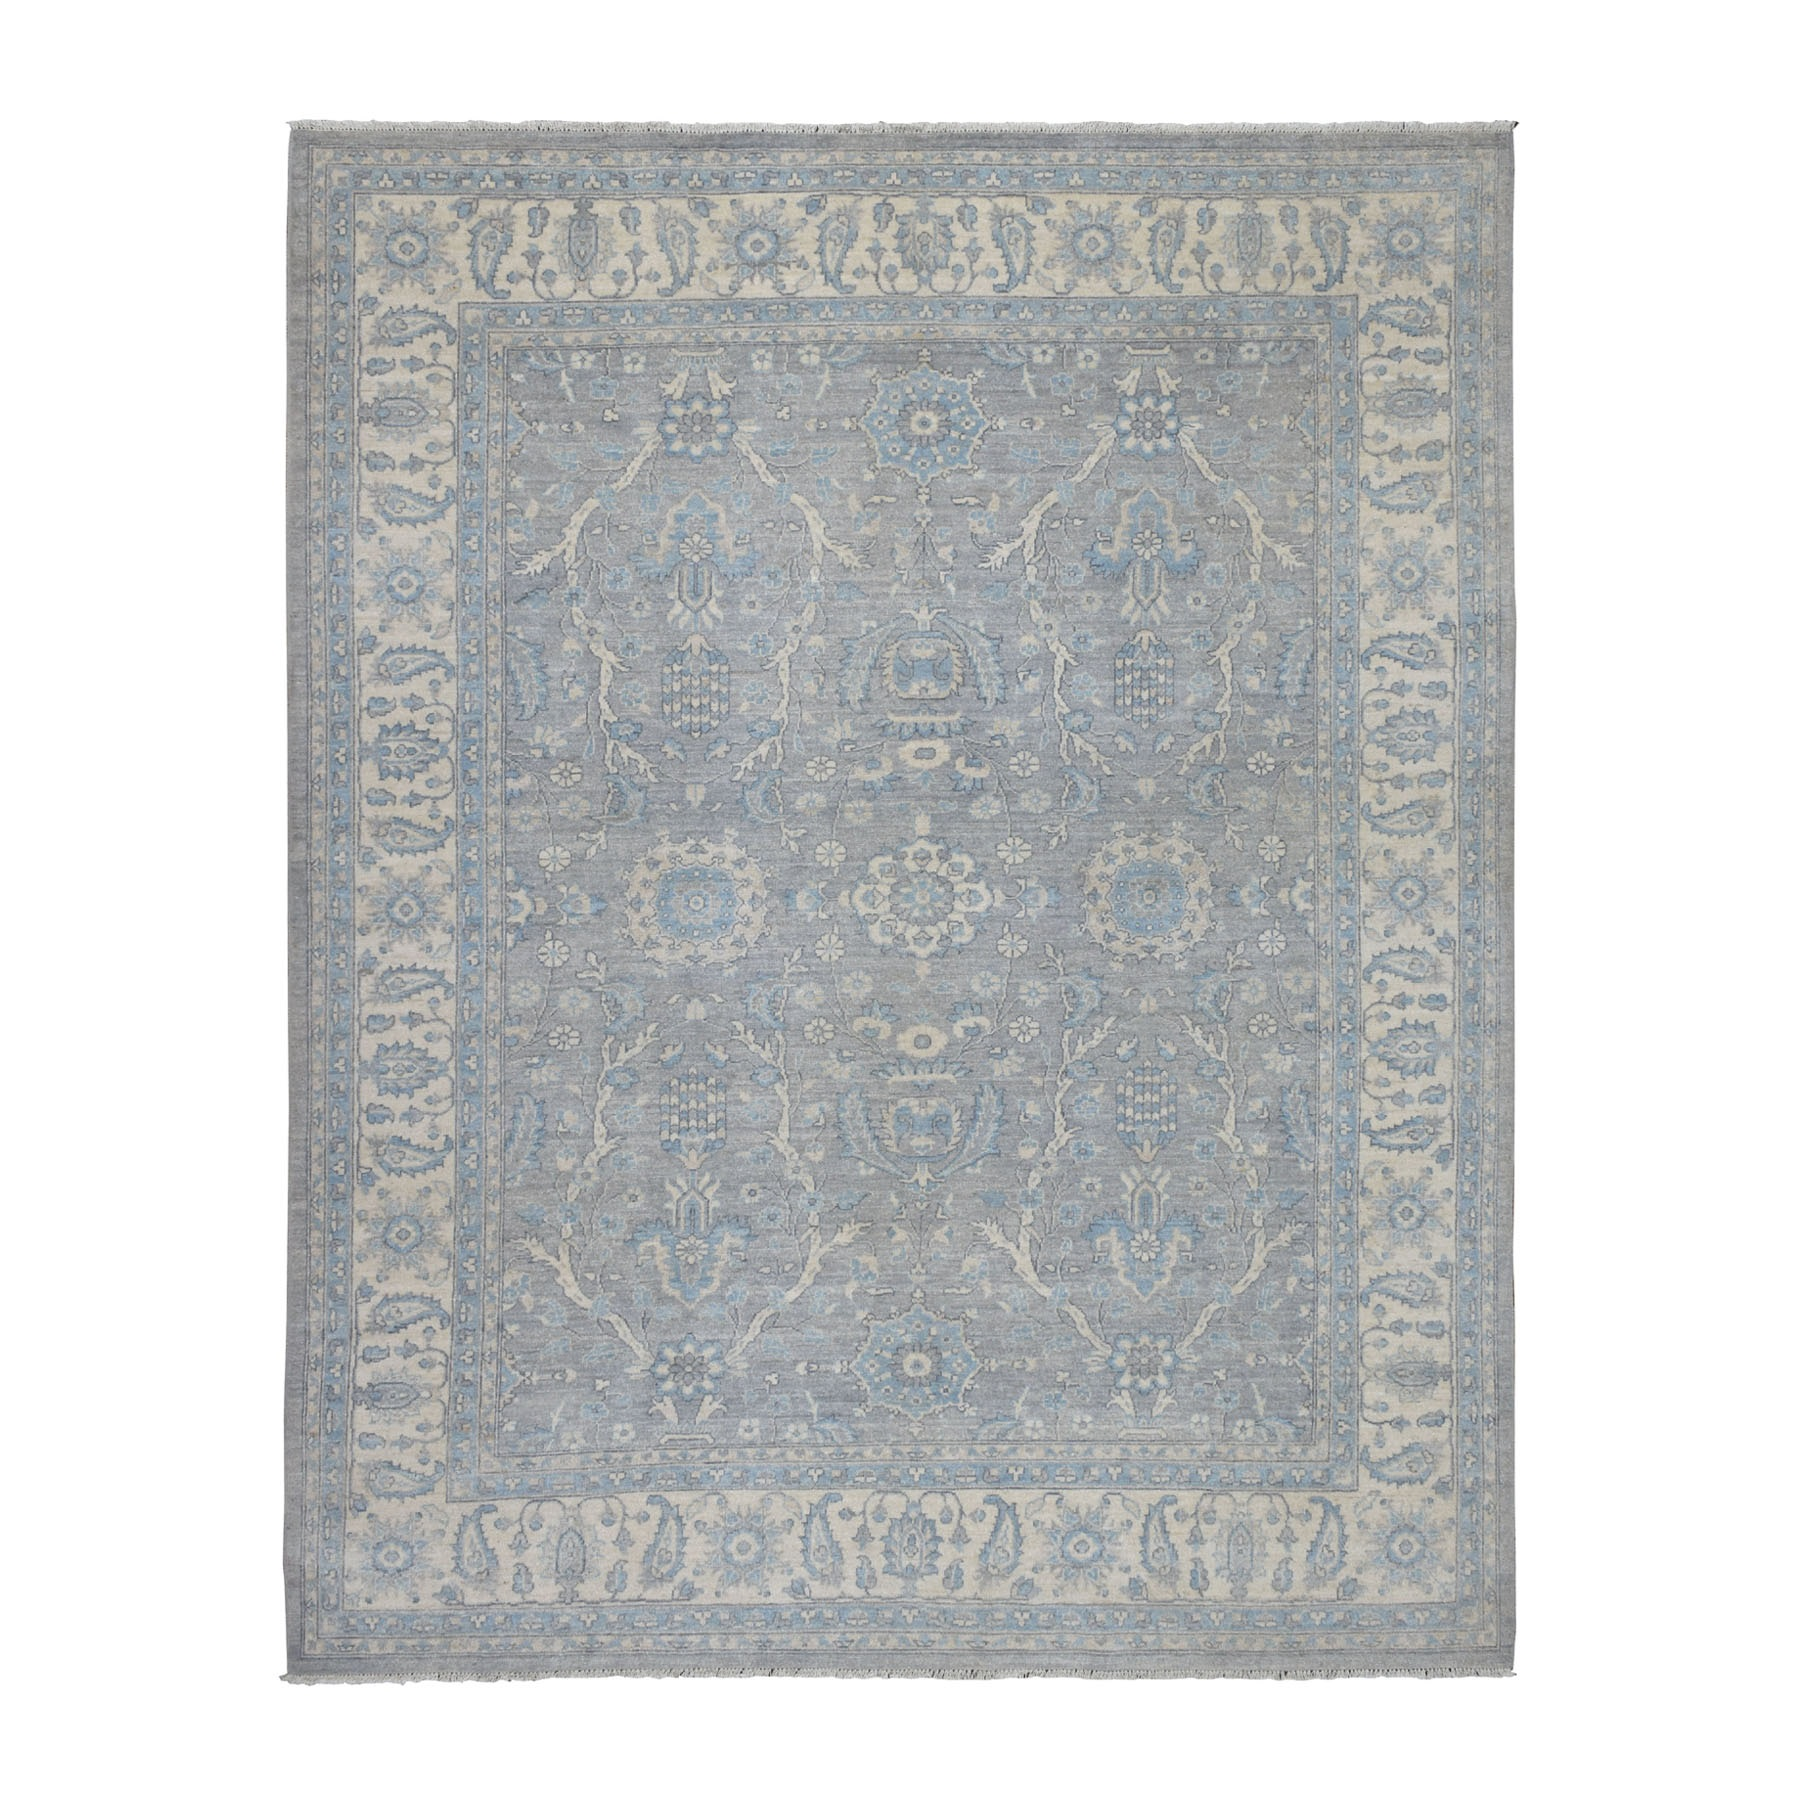 "7'10""X10' White Wash Peshawar Pure Wool Hand Knotted Oriental Rug moaec9d7"